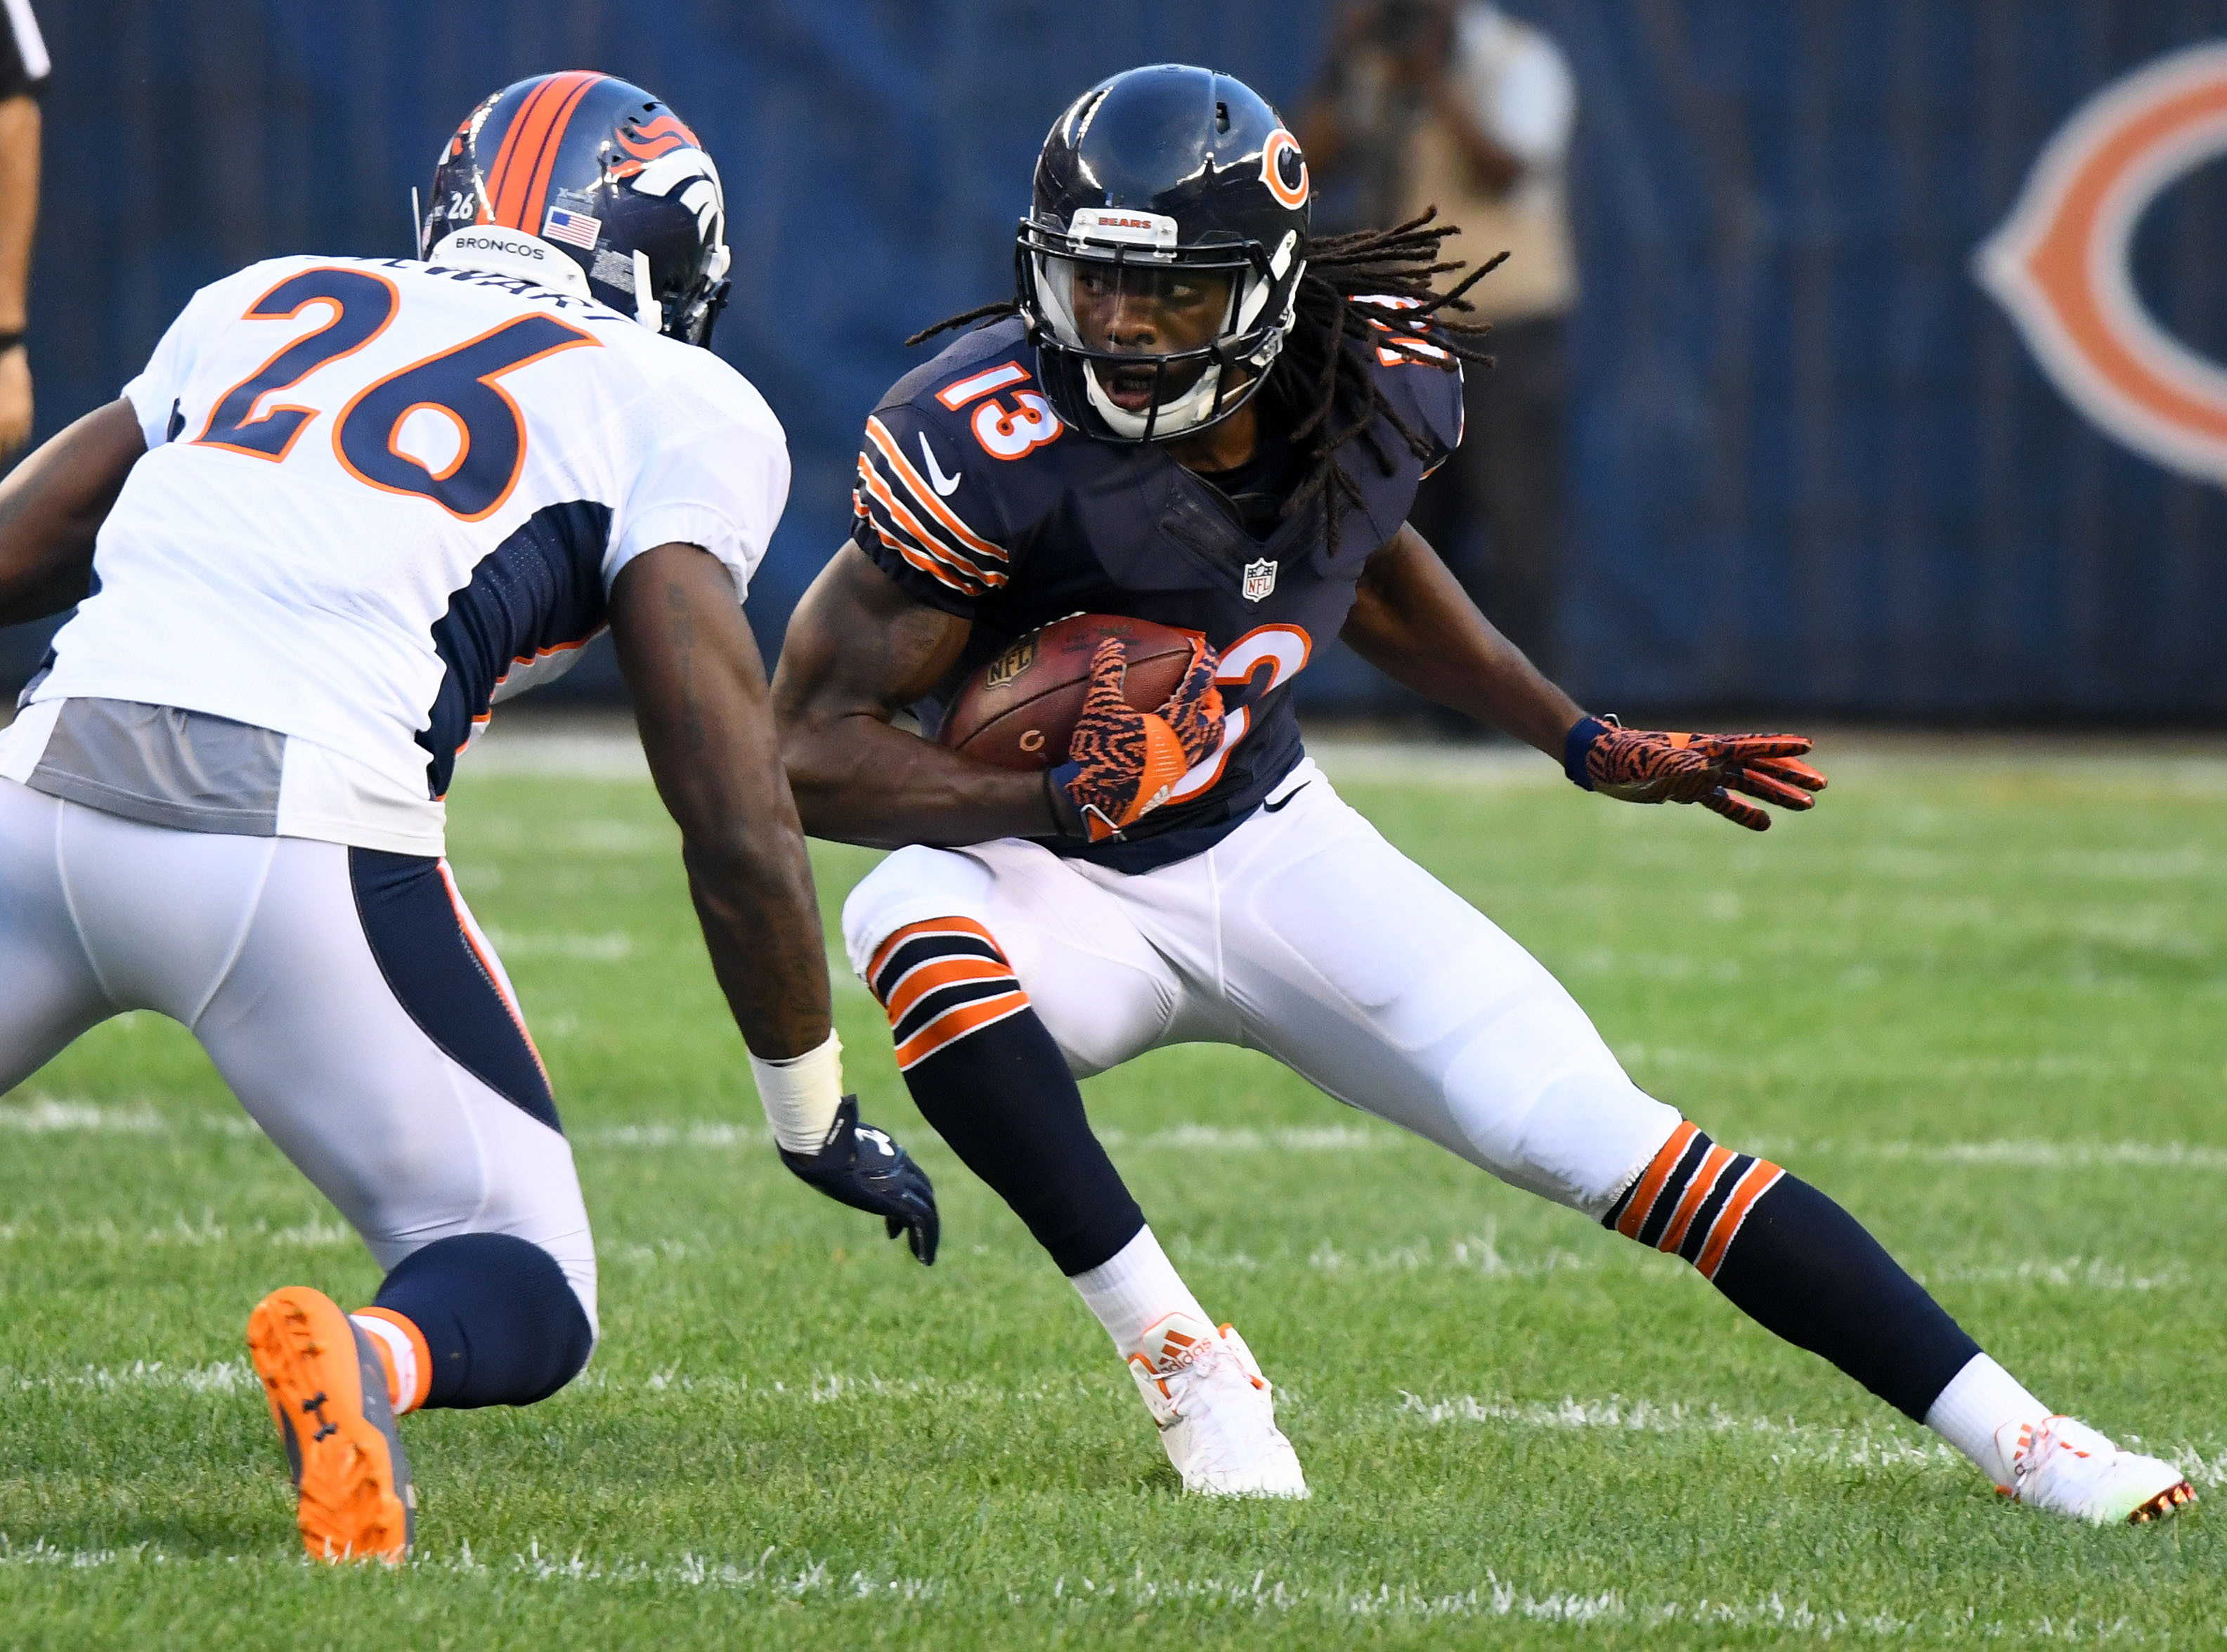 c7bfd7f5 Chicago Bears: 5 Players headed for breakout seasons in 2017